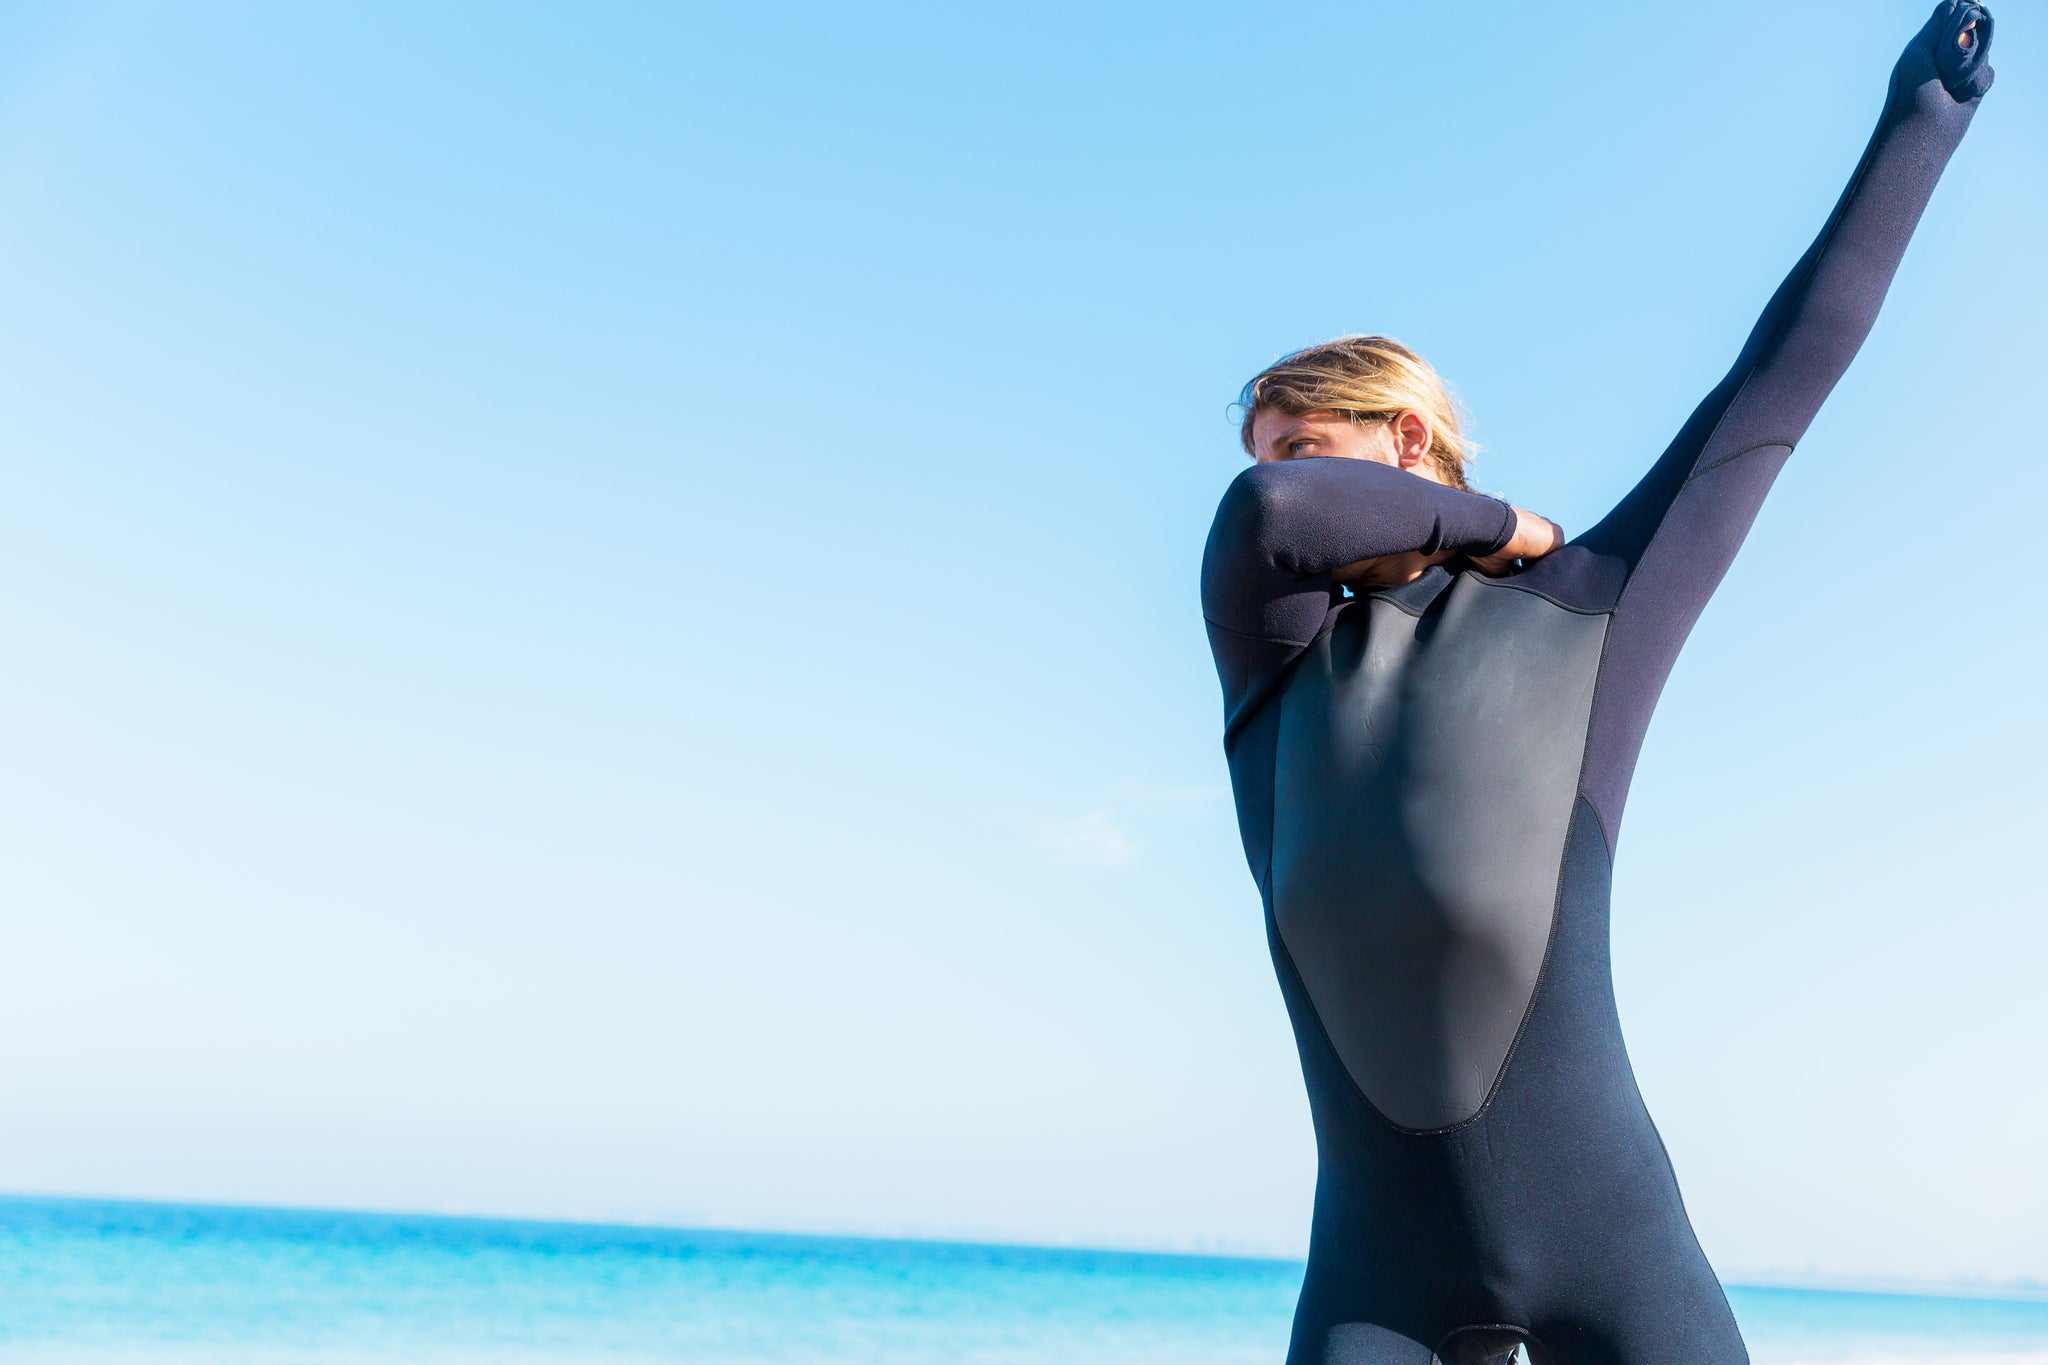 How To Care For Wetsuit